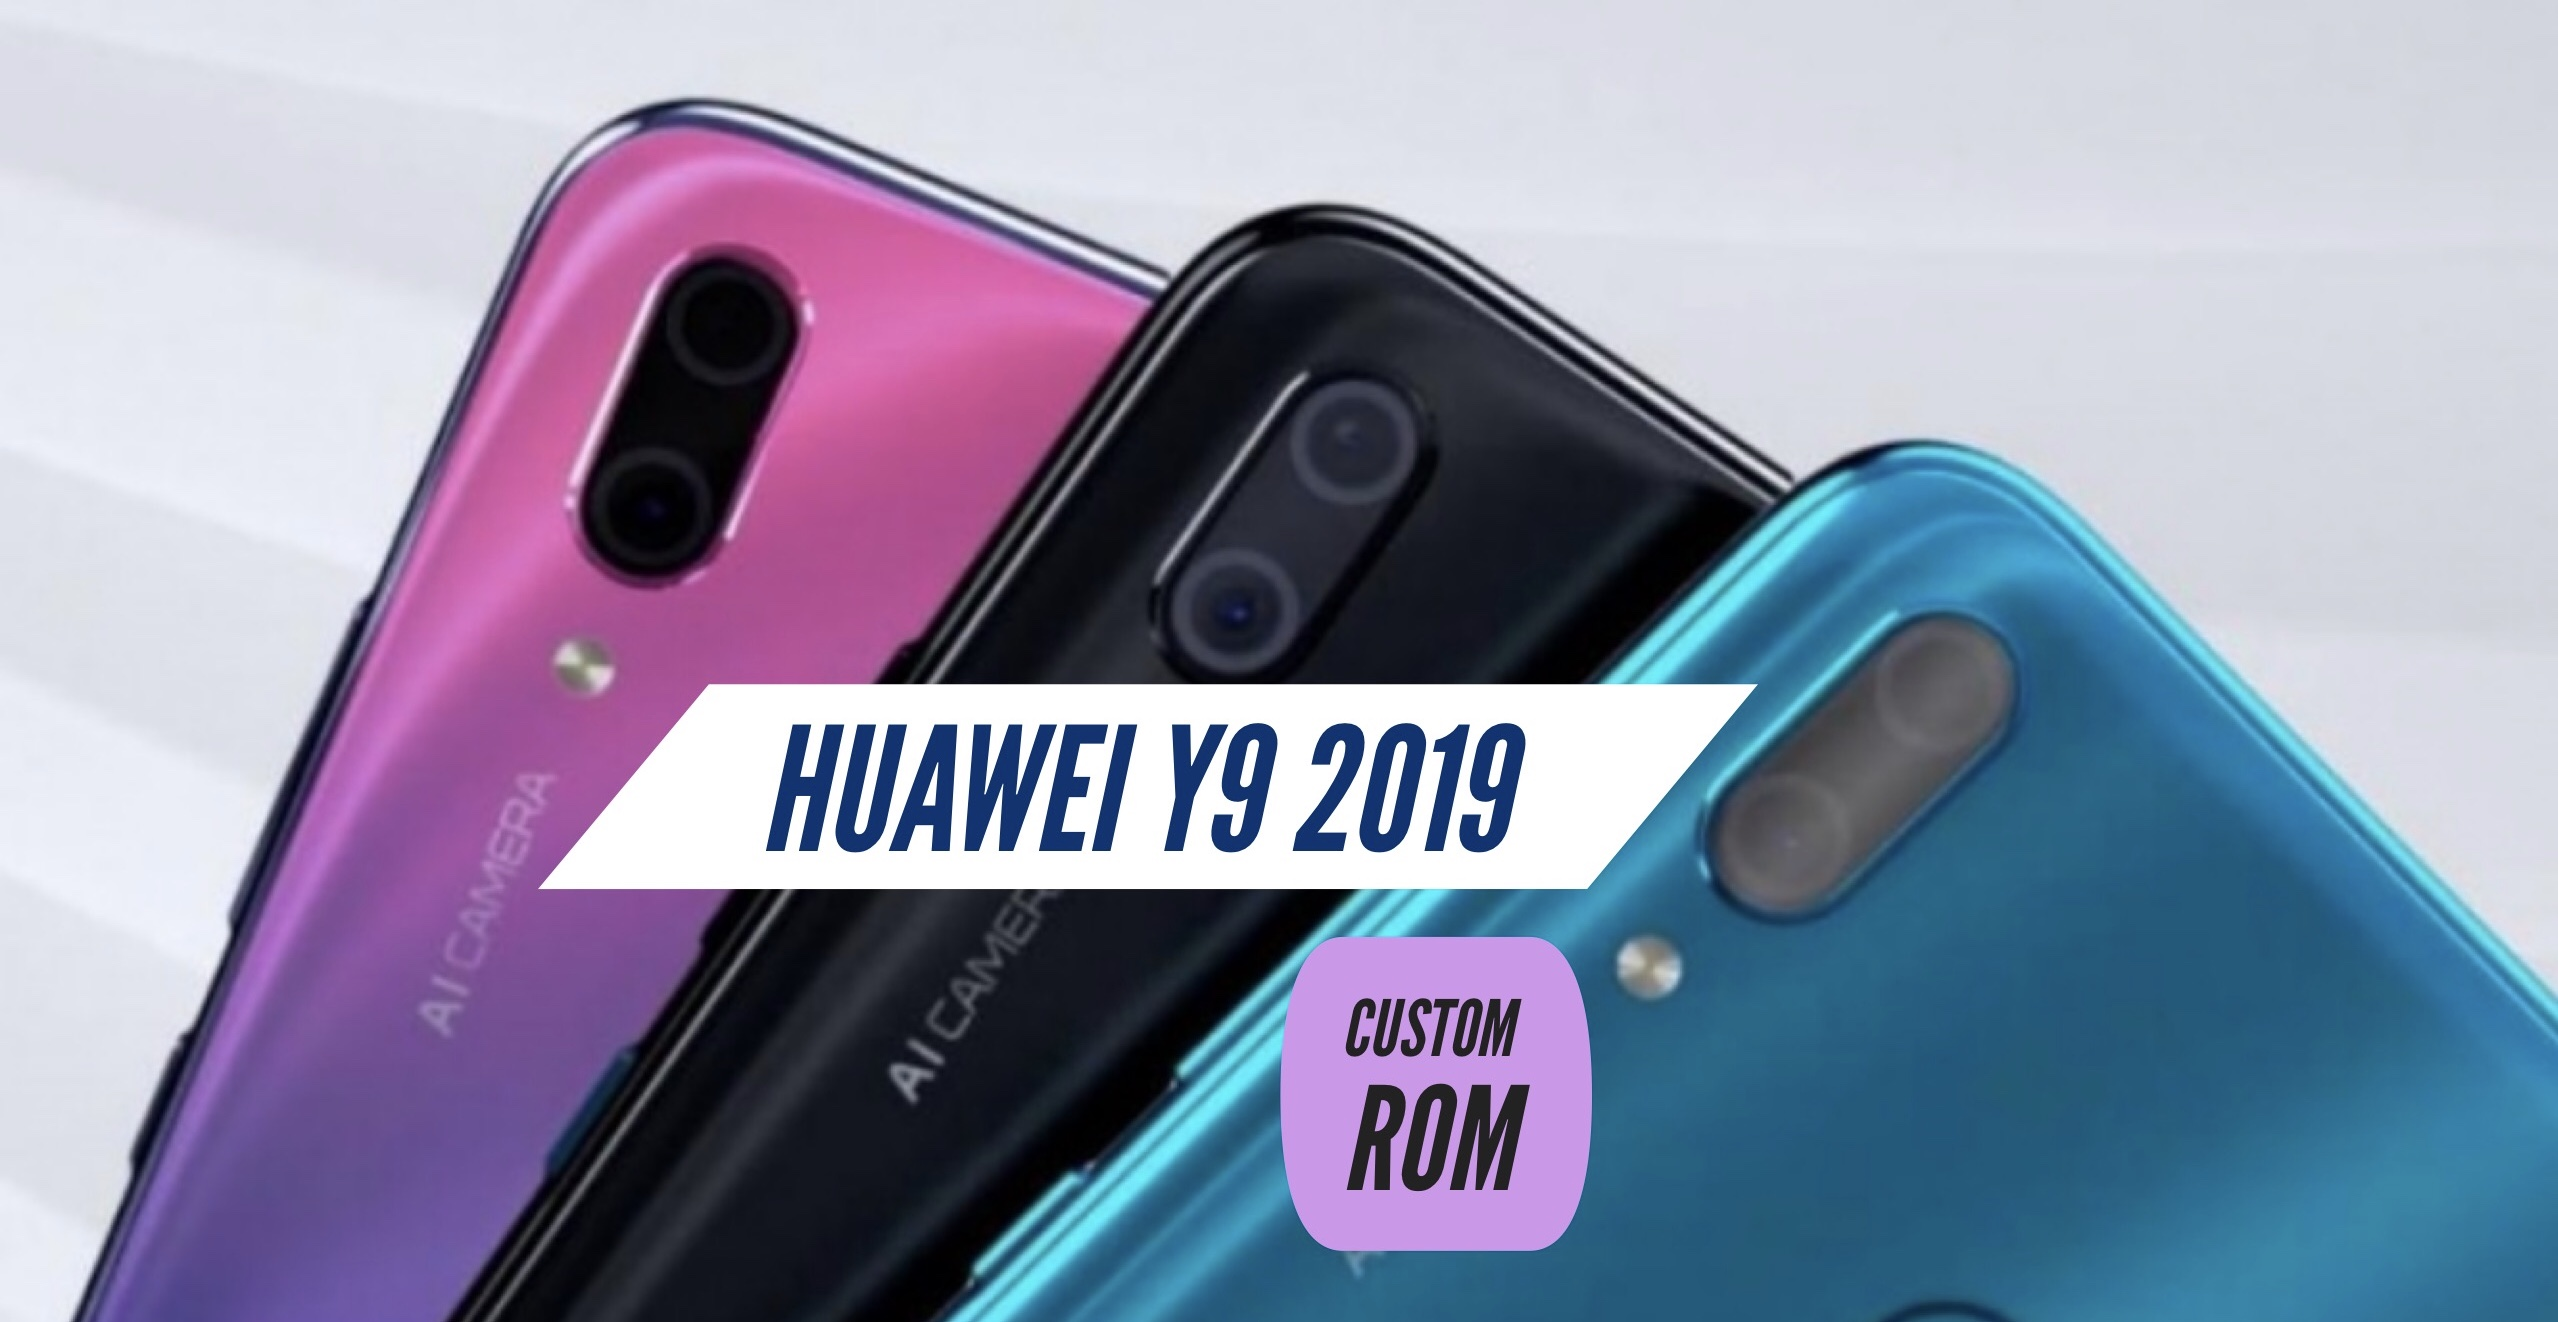 How to Install Custom ROM on Huawei Y9 2019: CWM & TWRP!